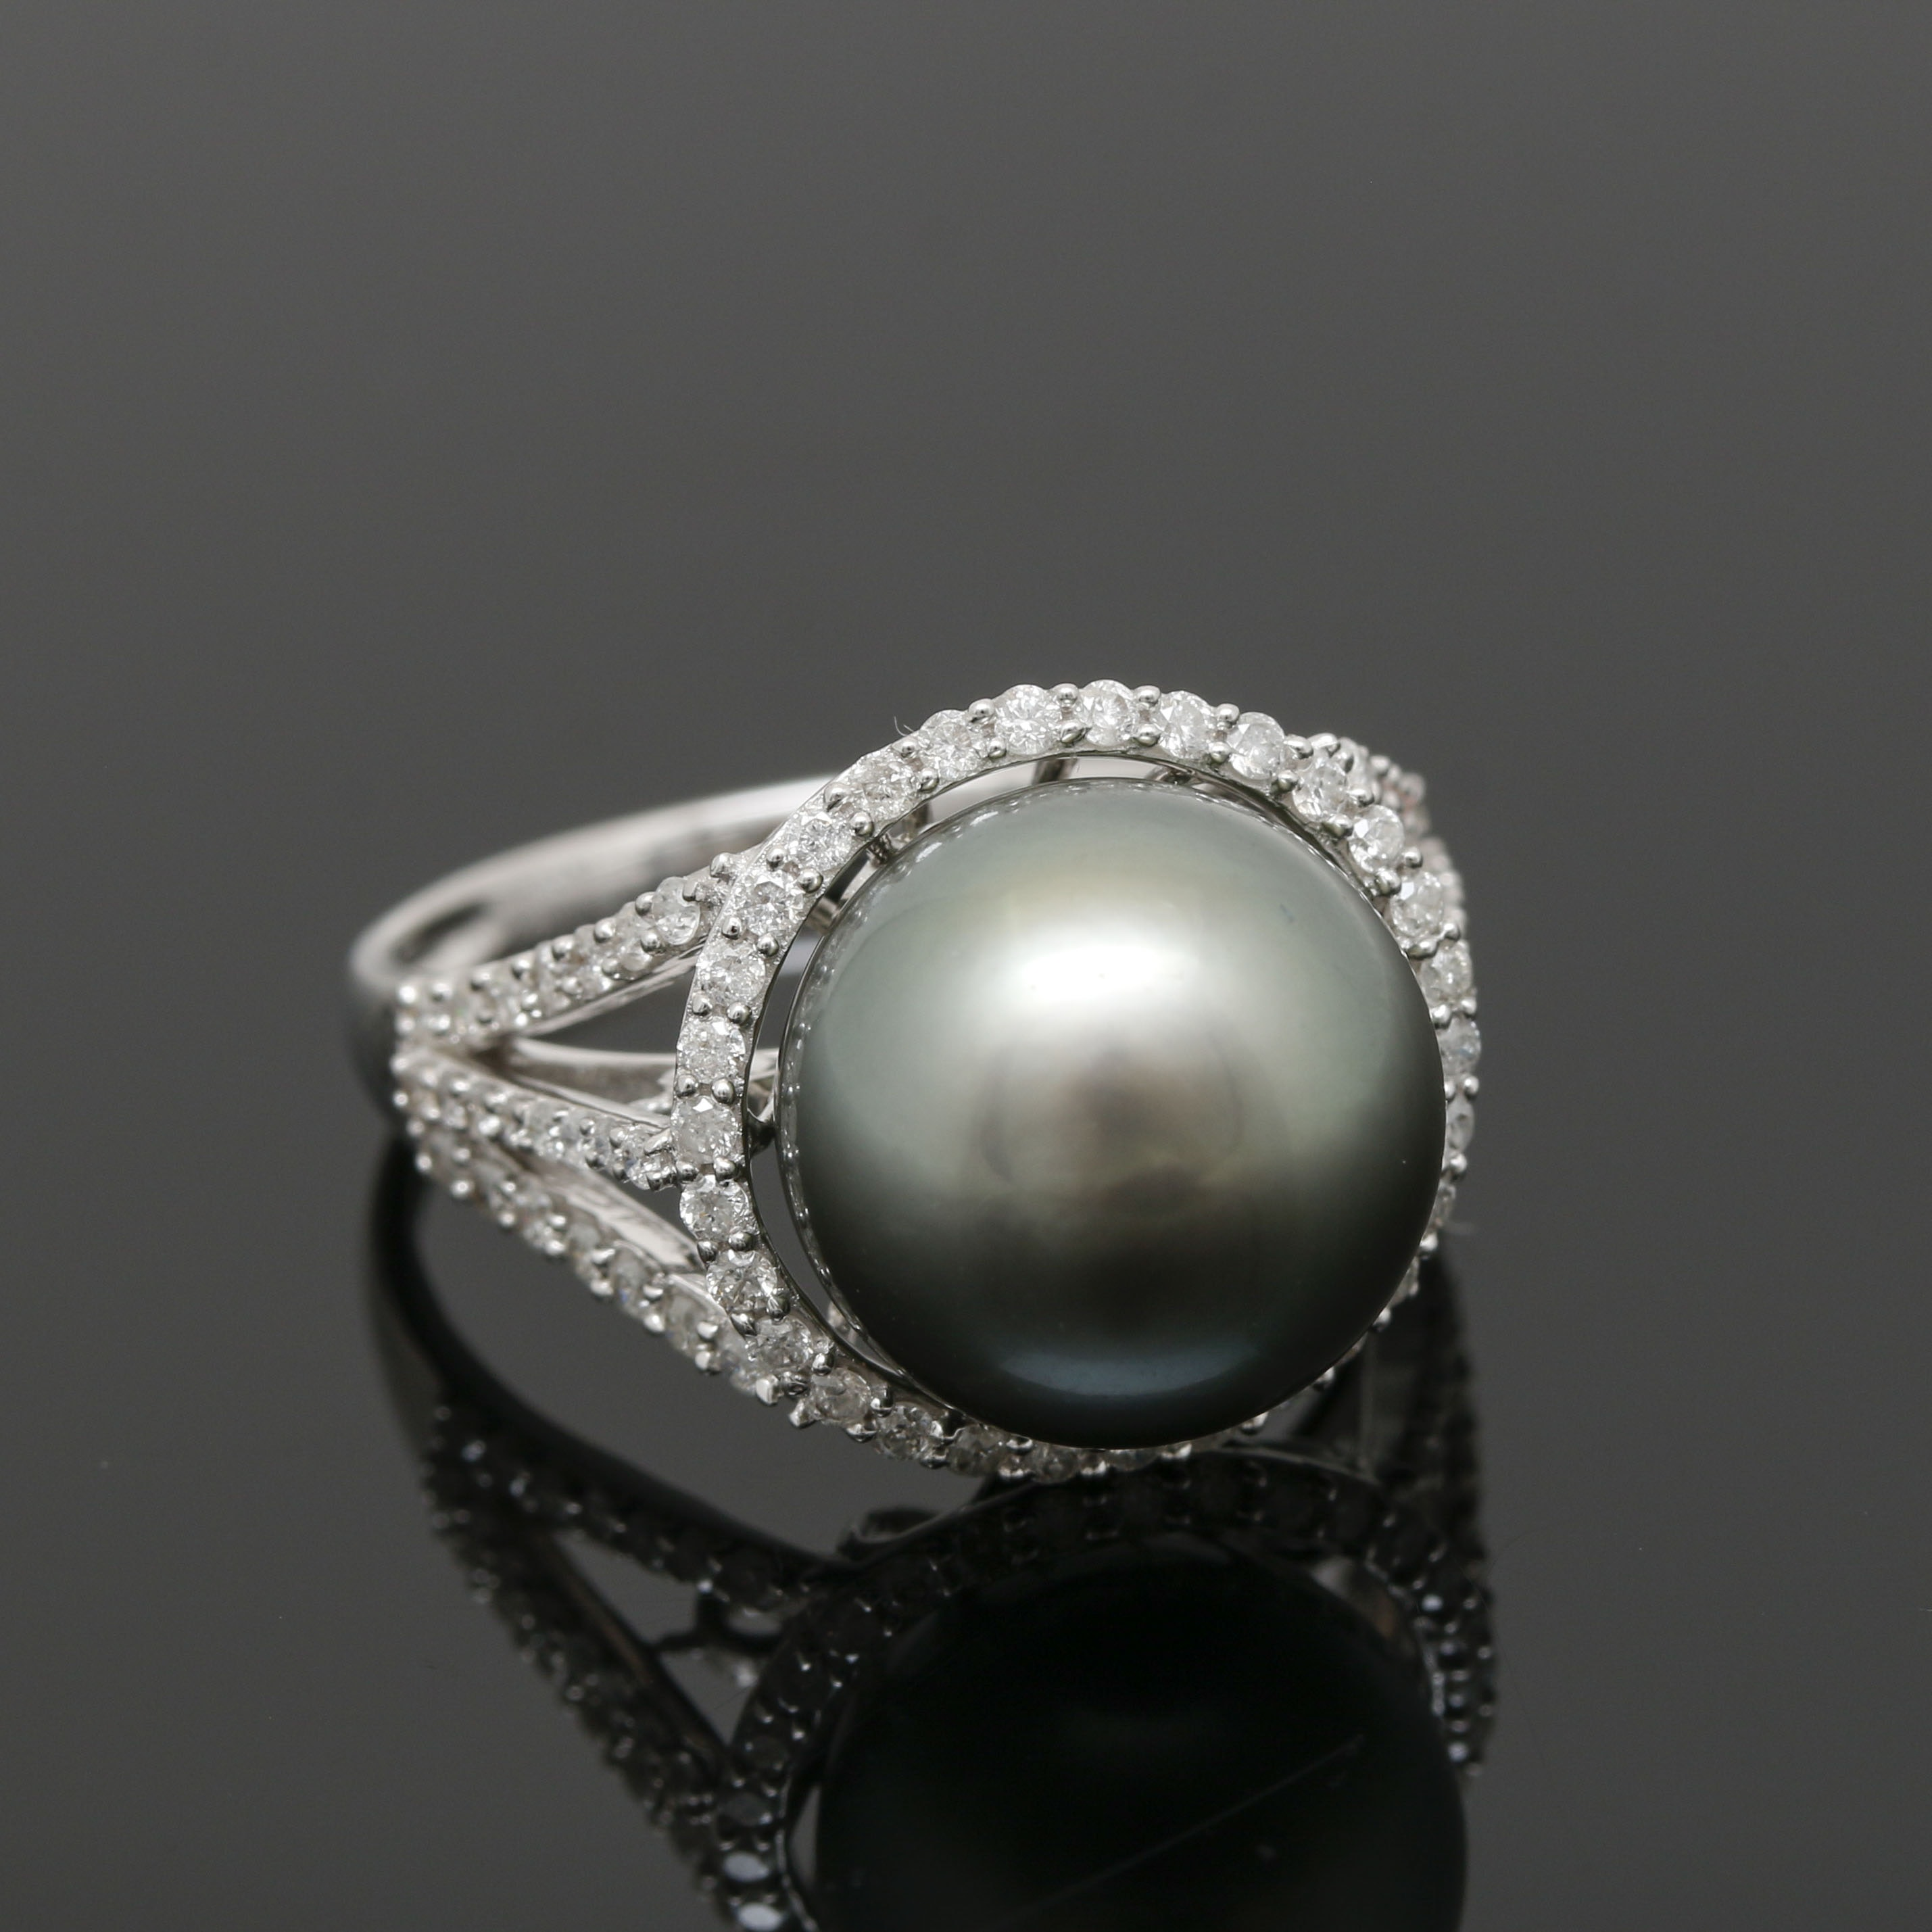 Orianne Collins 18K White Gold Tahitian Cultured Pearl and Diamond Ring